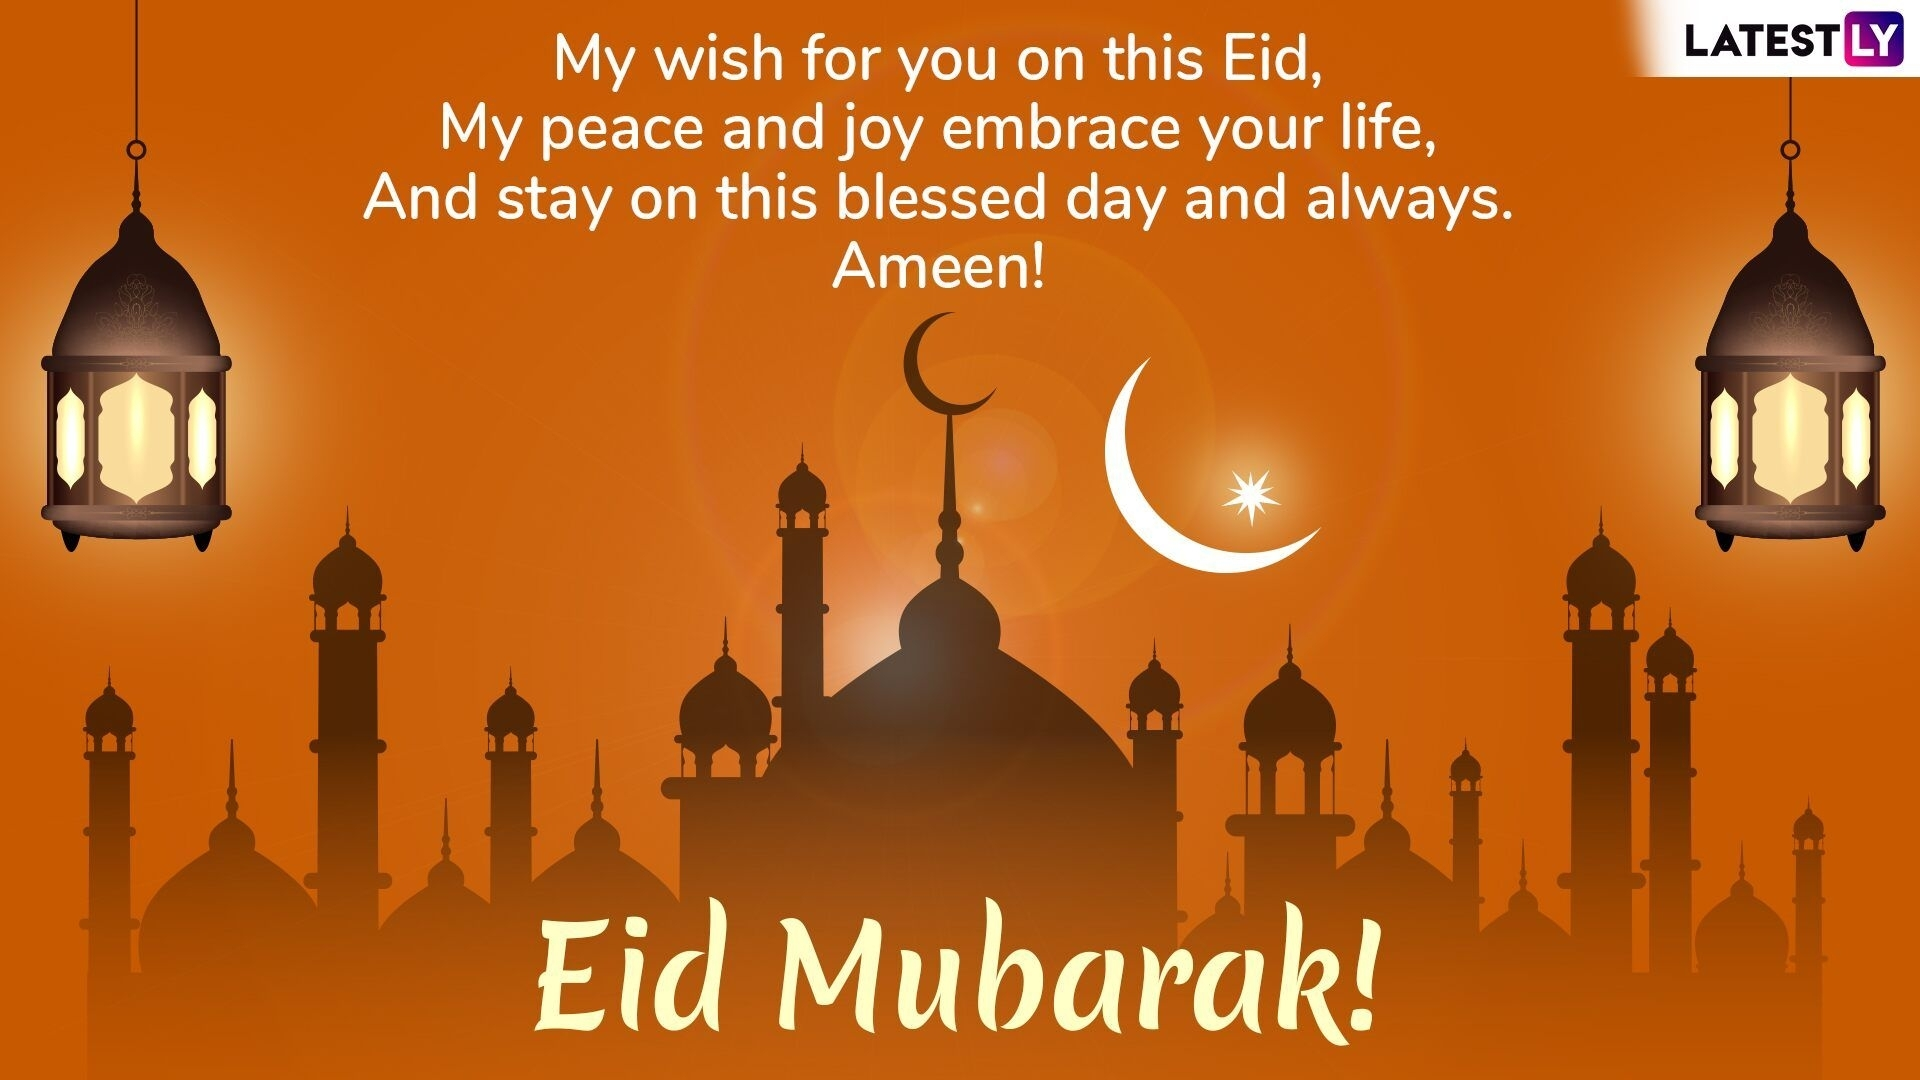 Eid Mubarak Quotes And Messages